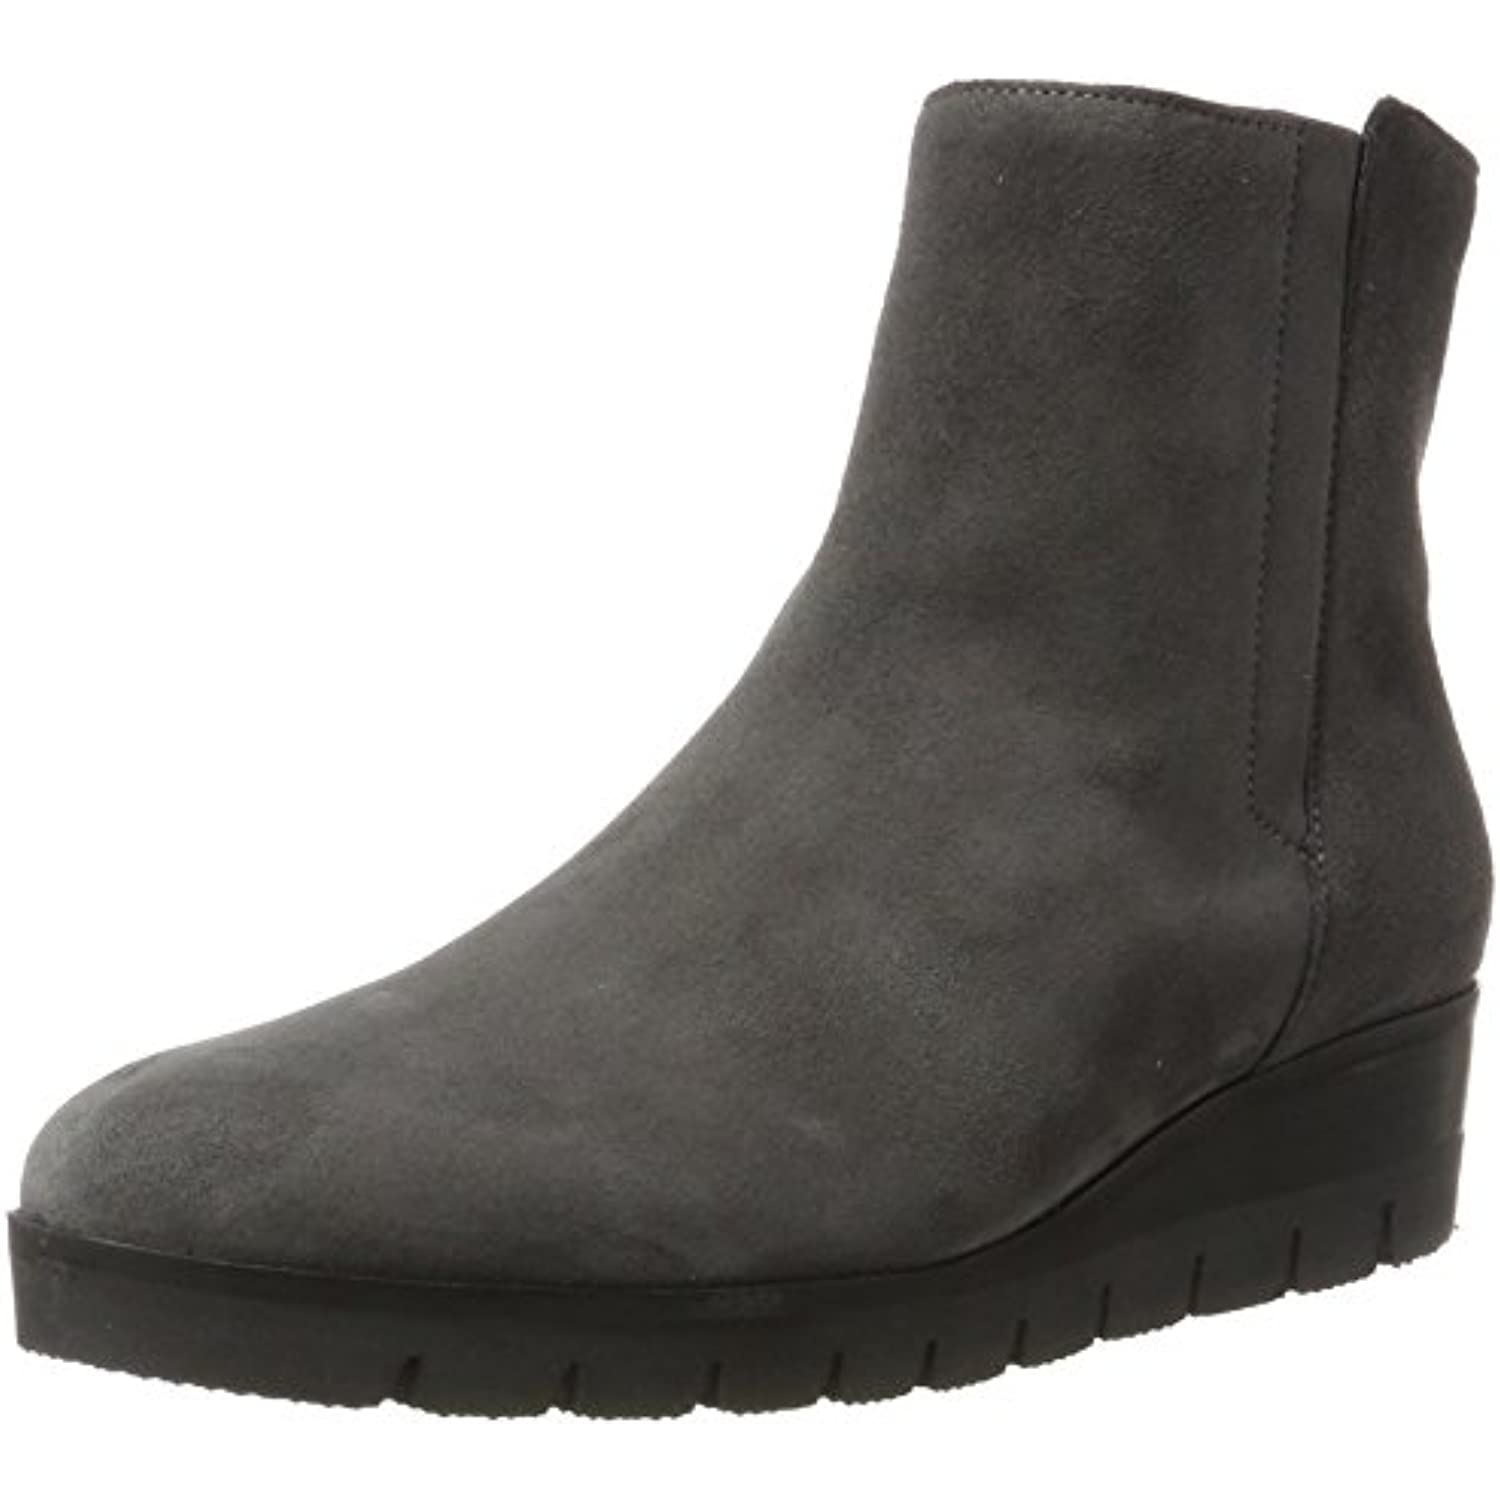 Gabor Gabor Gabor Shoes Fashion, Bottes Femme - B0725K4VQC - d42b9a